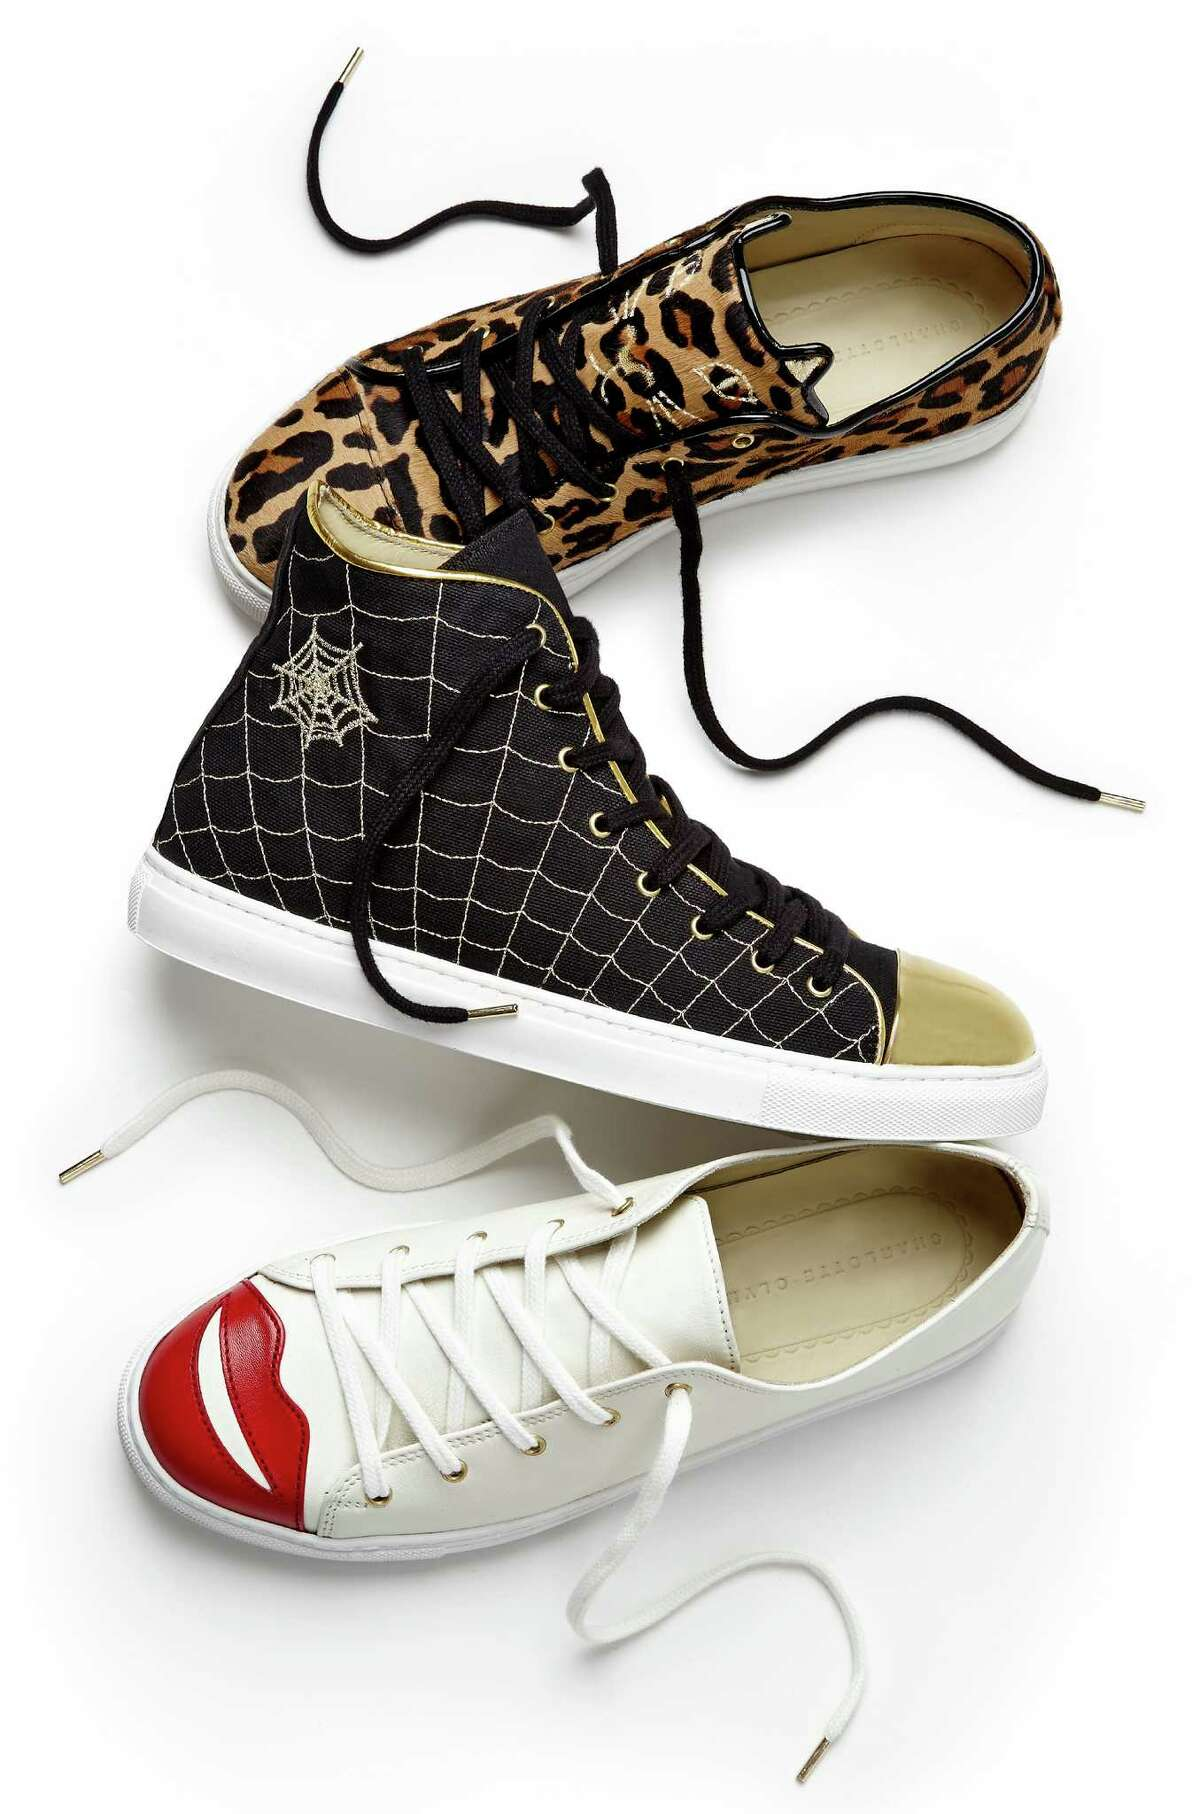 From top: low-top Purrrfect Sneakers, Web High-Tops in black canvas with gold leather toe cap, Kiss Me Sneakers in off-white nappa leather.